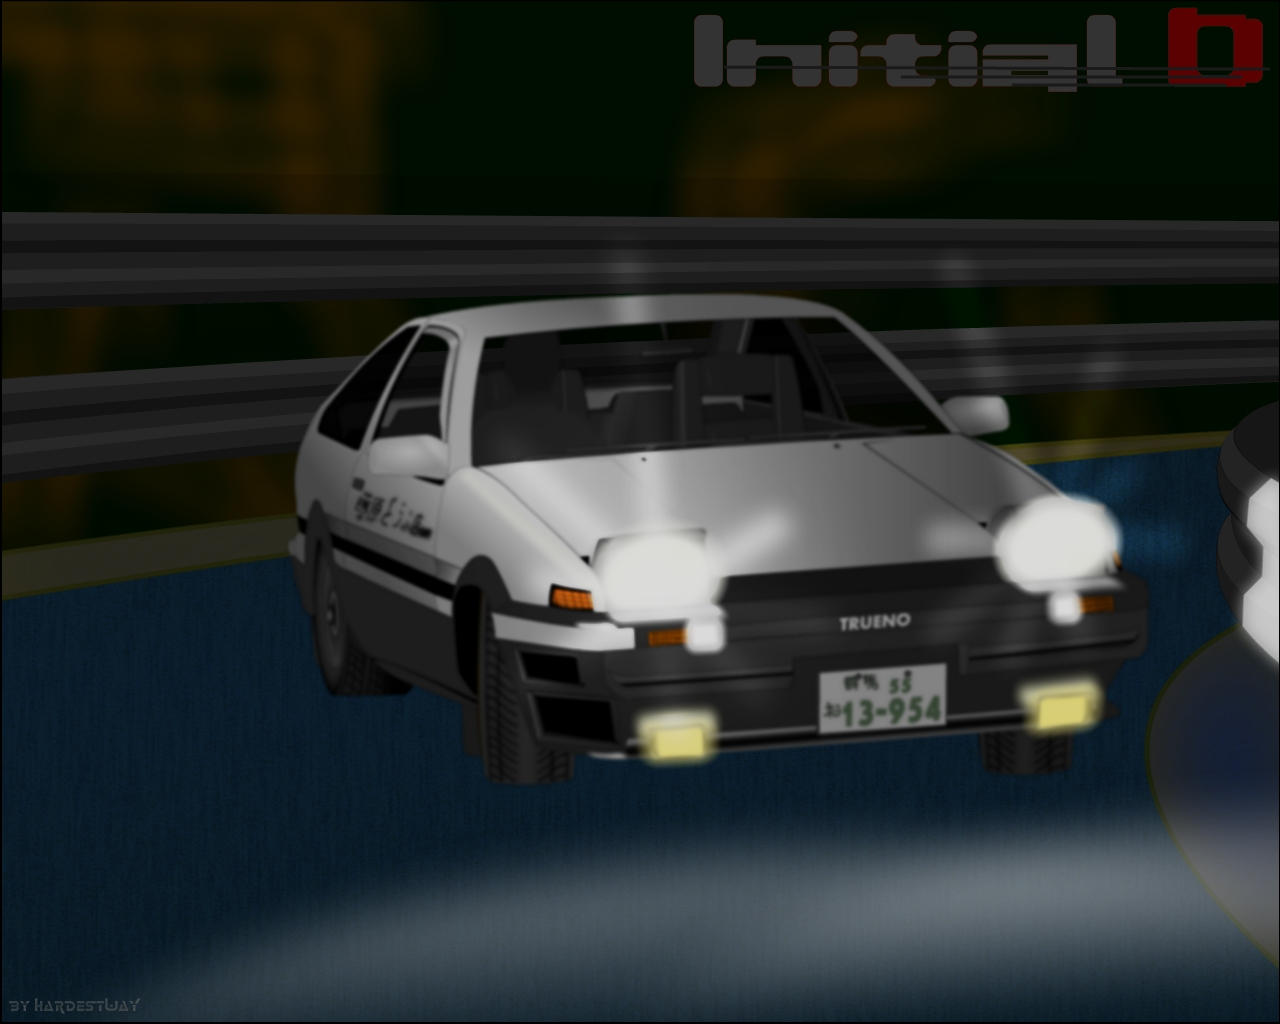 wp initial d trueno ae86 by hardestway on deviantart. Black Bedroom Furniture Sets. Home Design Ideas